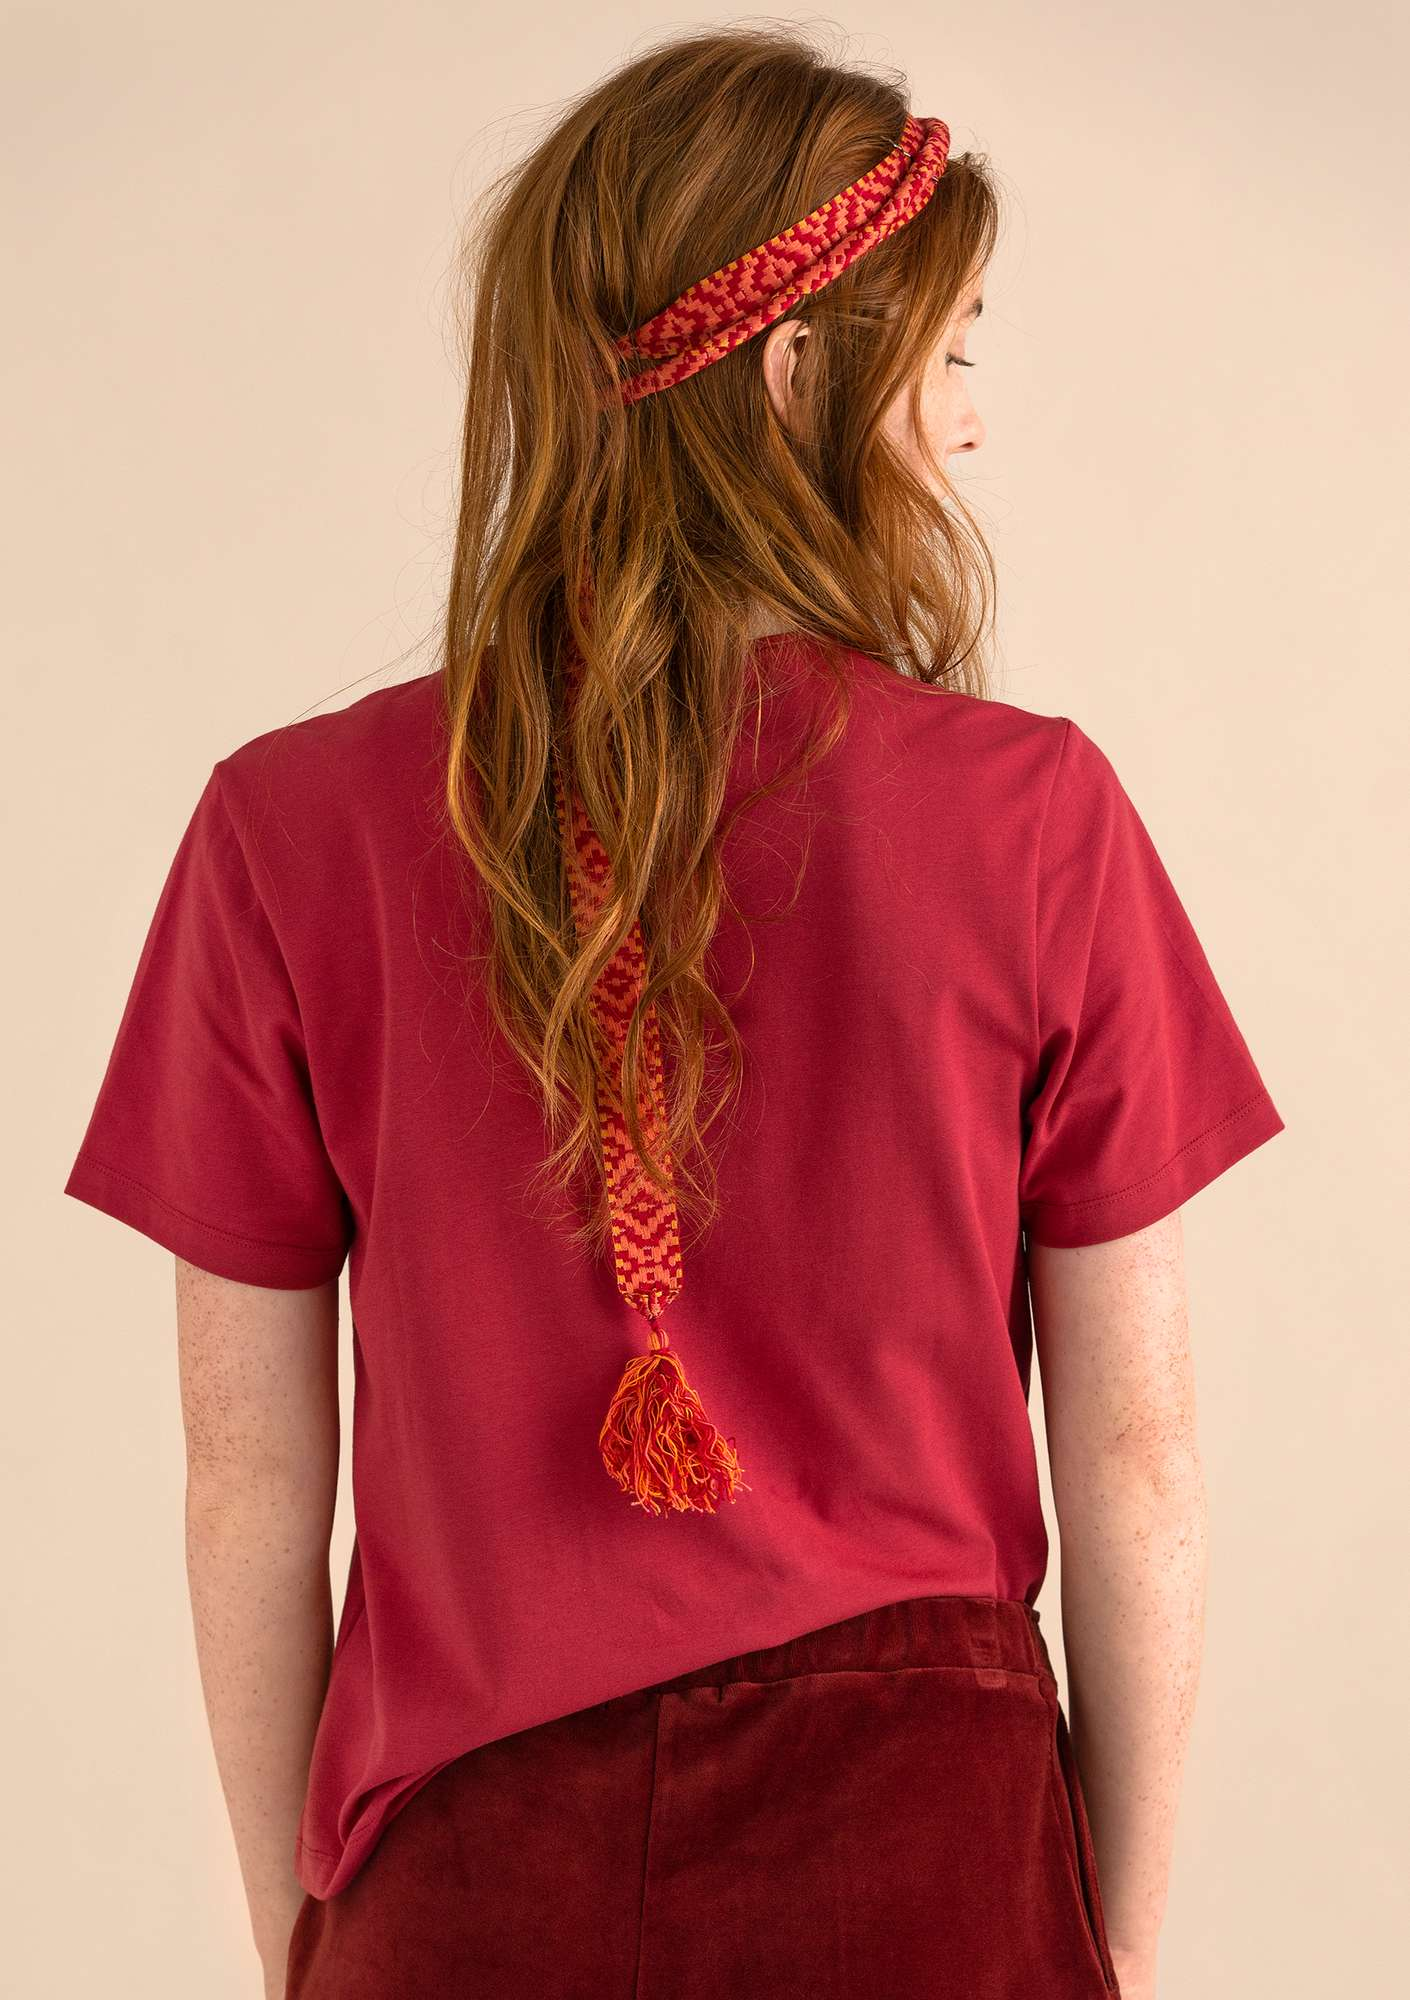 T-shirt in eco-cotton/spandex poppy